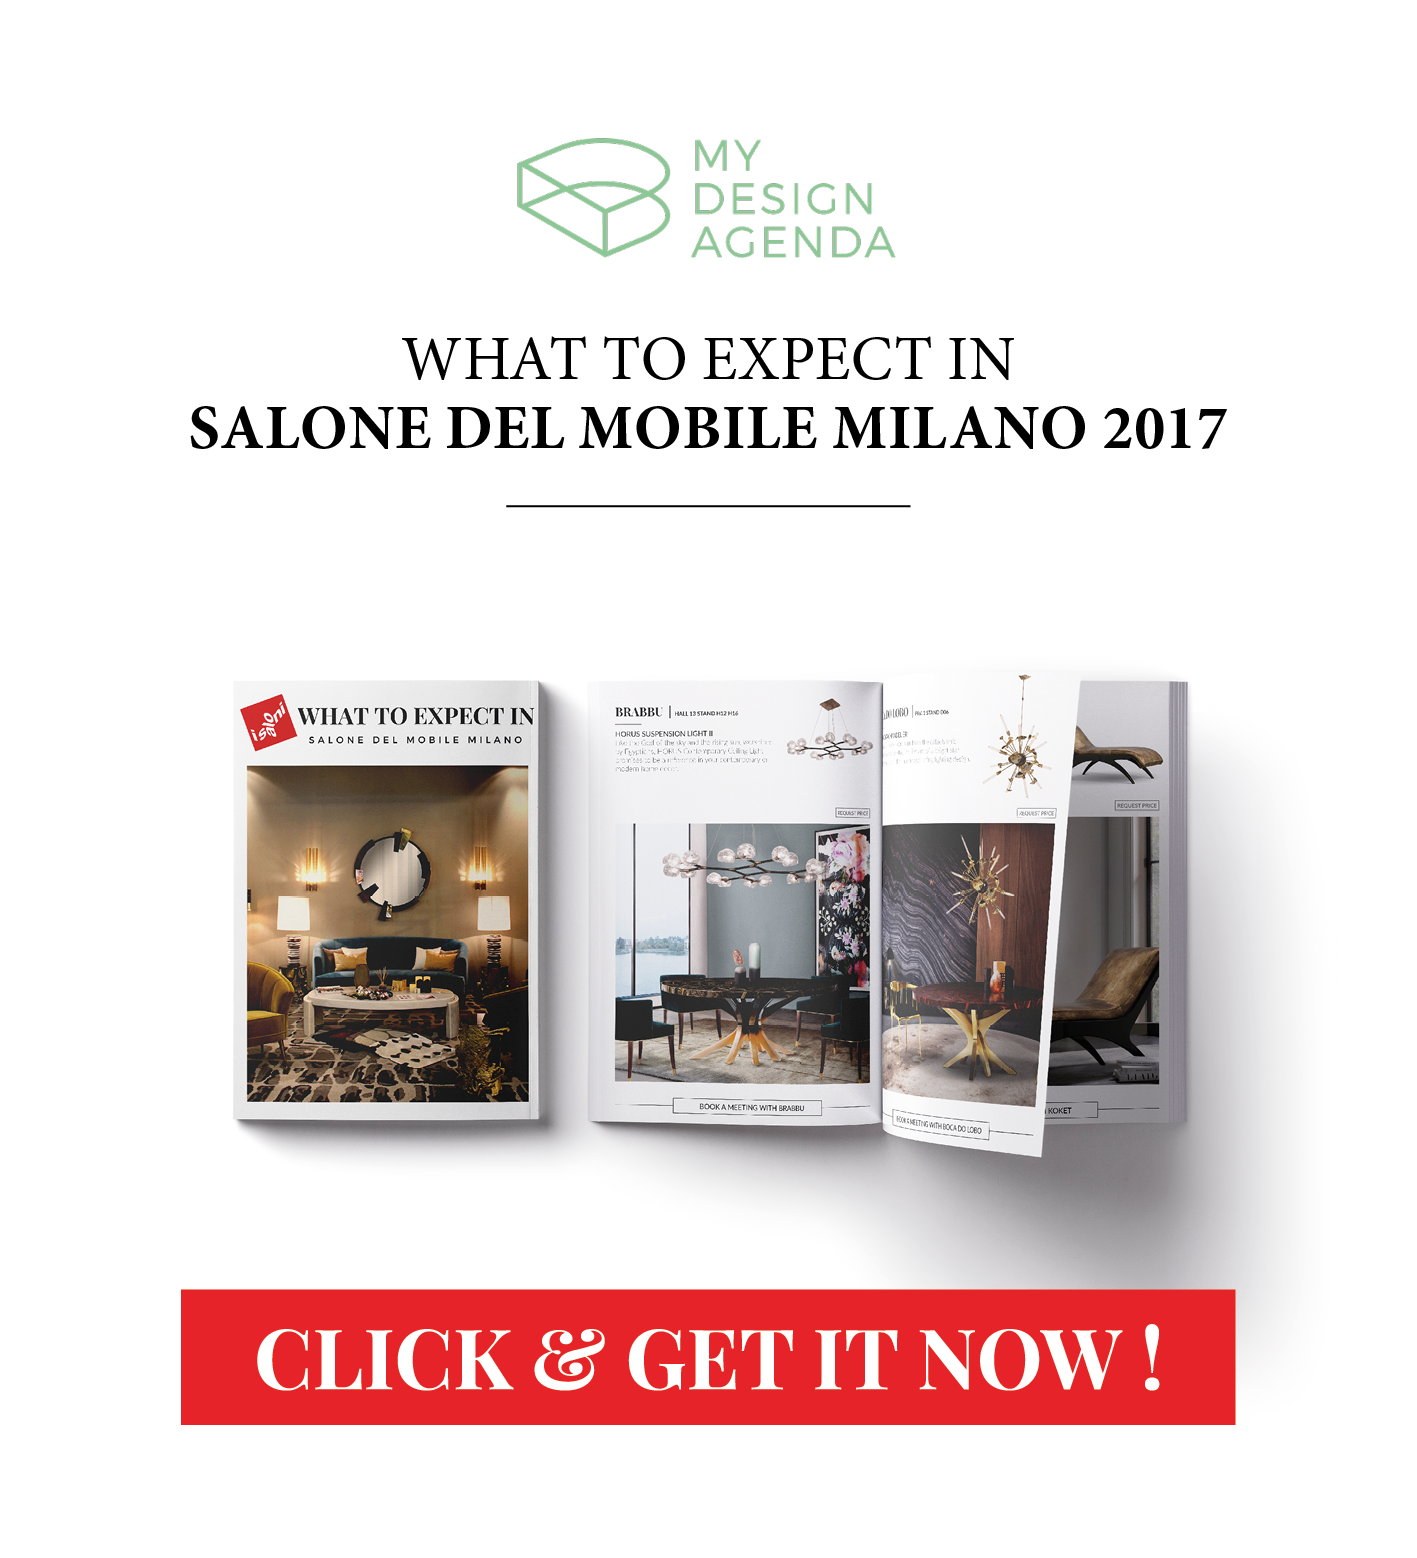 The best of salone del mobile milano 2017 for Mostra del mobile milano